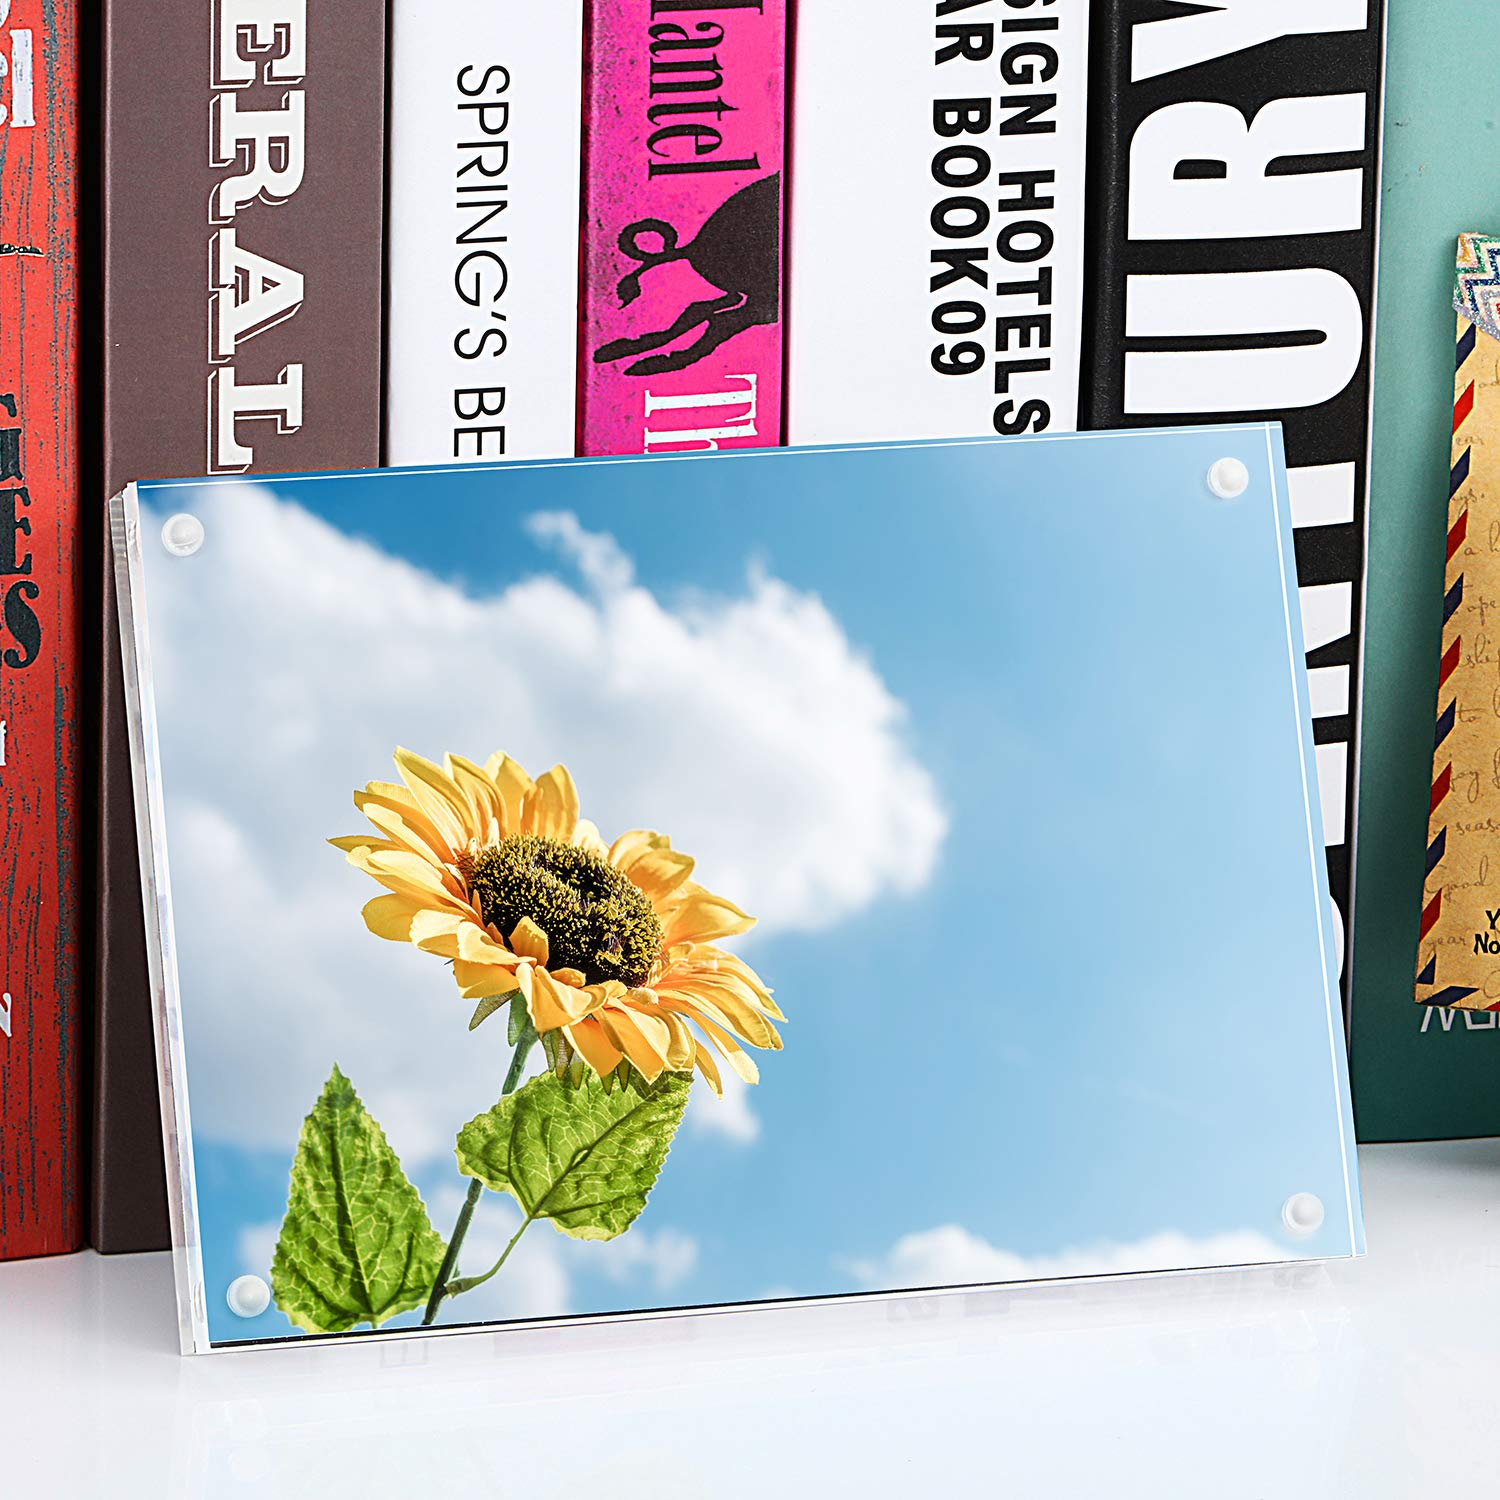 ONE WALL Acrylic Picture Frame 4x6 Inch Magnetic Clear Photo Frame Free Standing for Tabletop Desktop Display